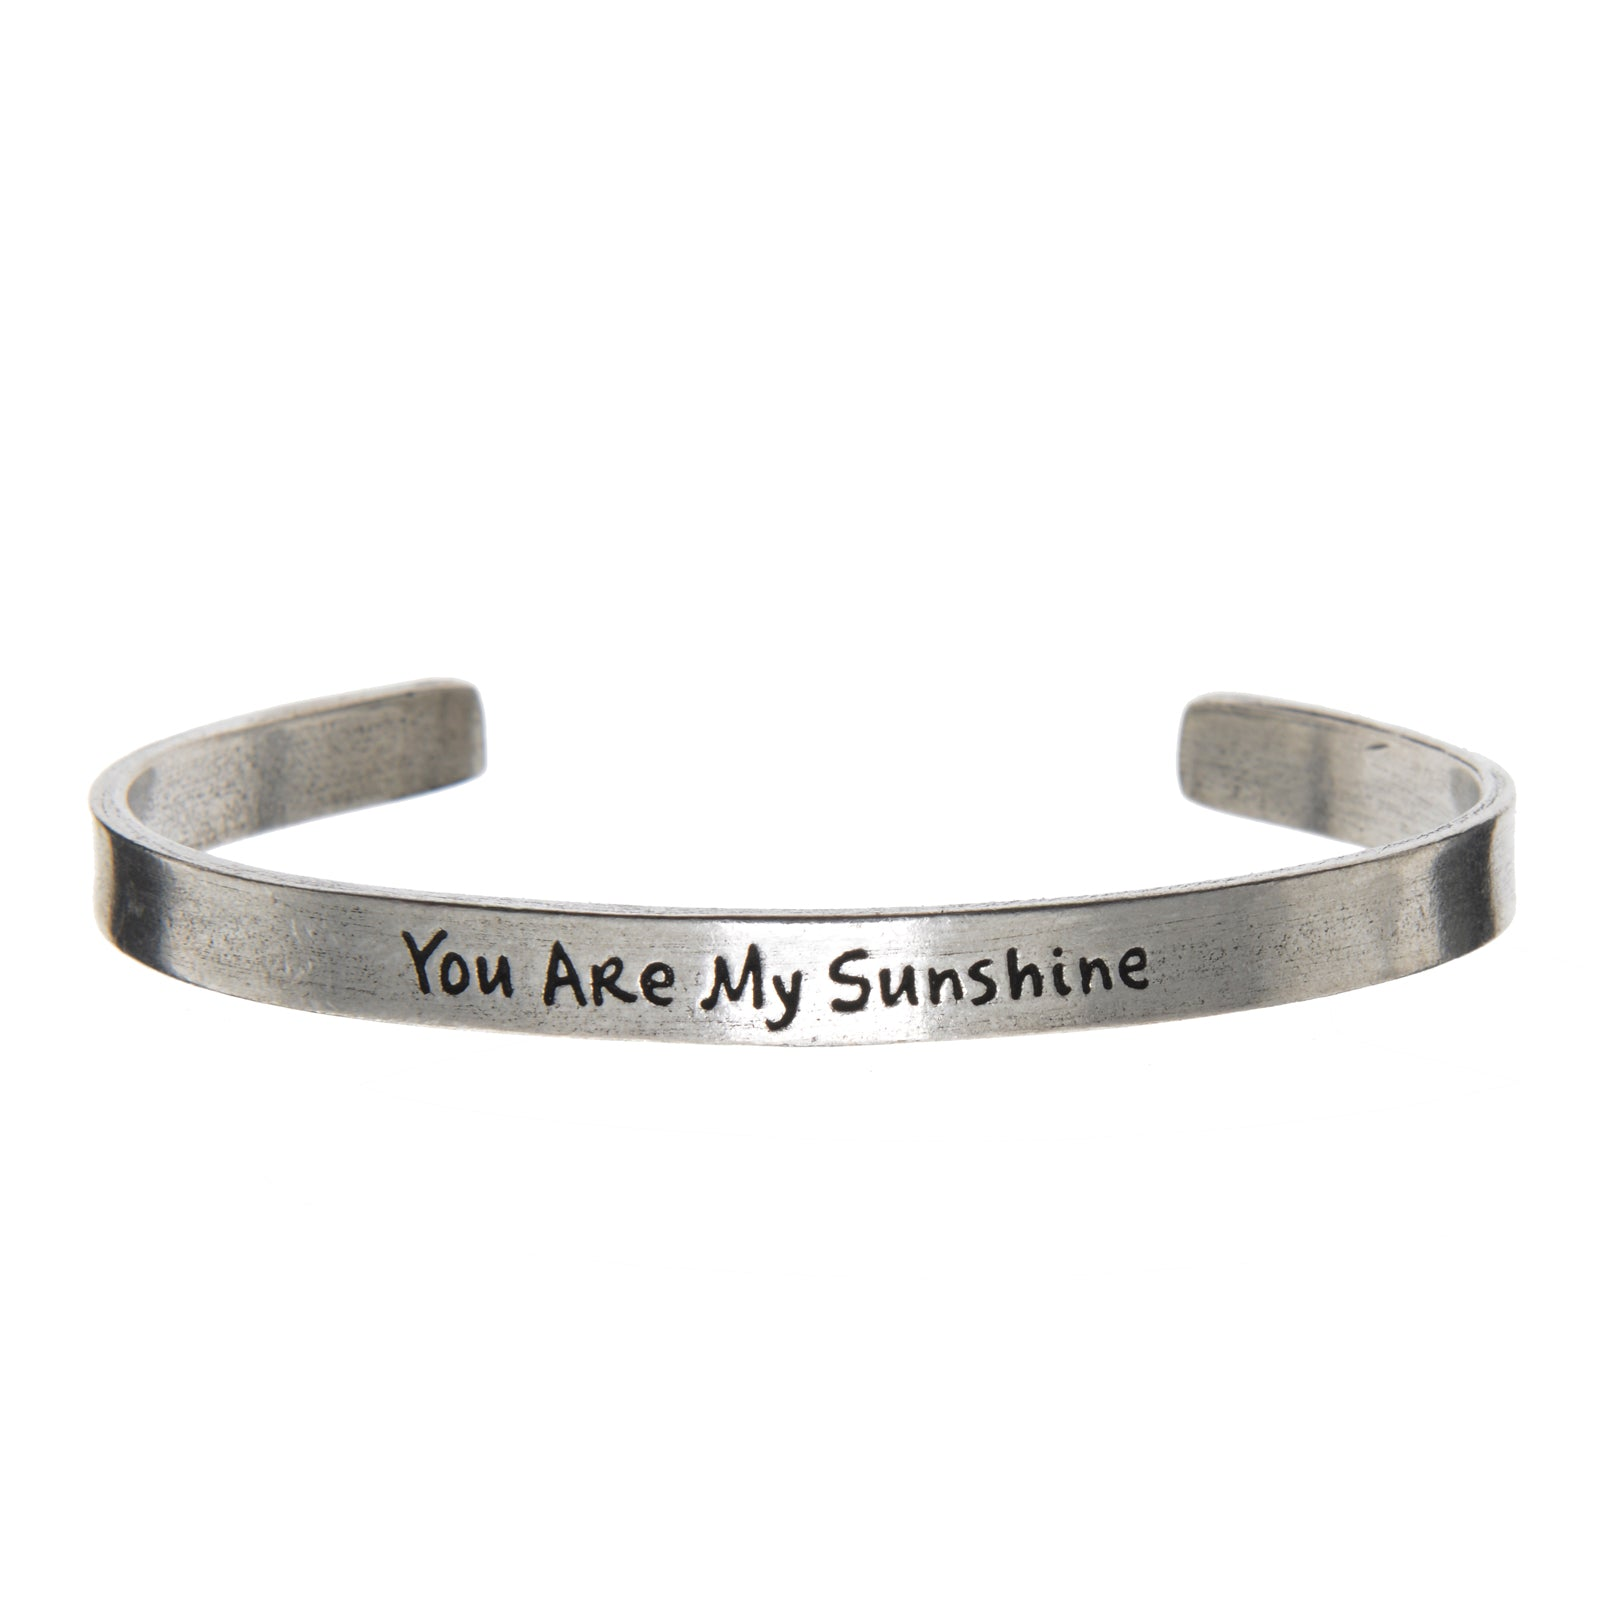 You Are My Sunshine Quotable Cuff Bracelet - Whitney Howard Designs